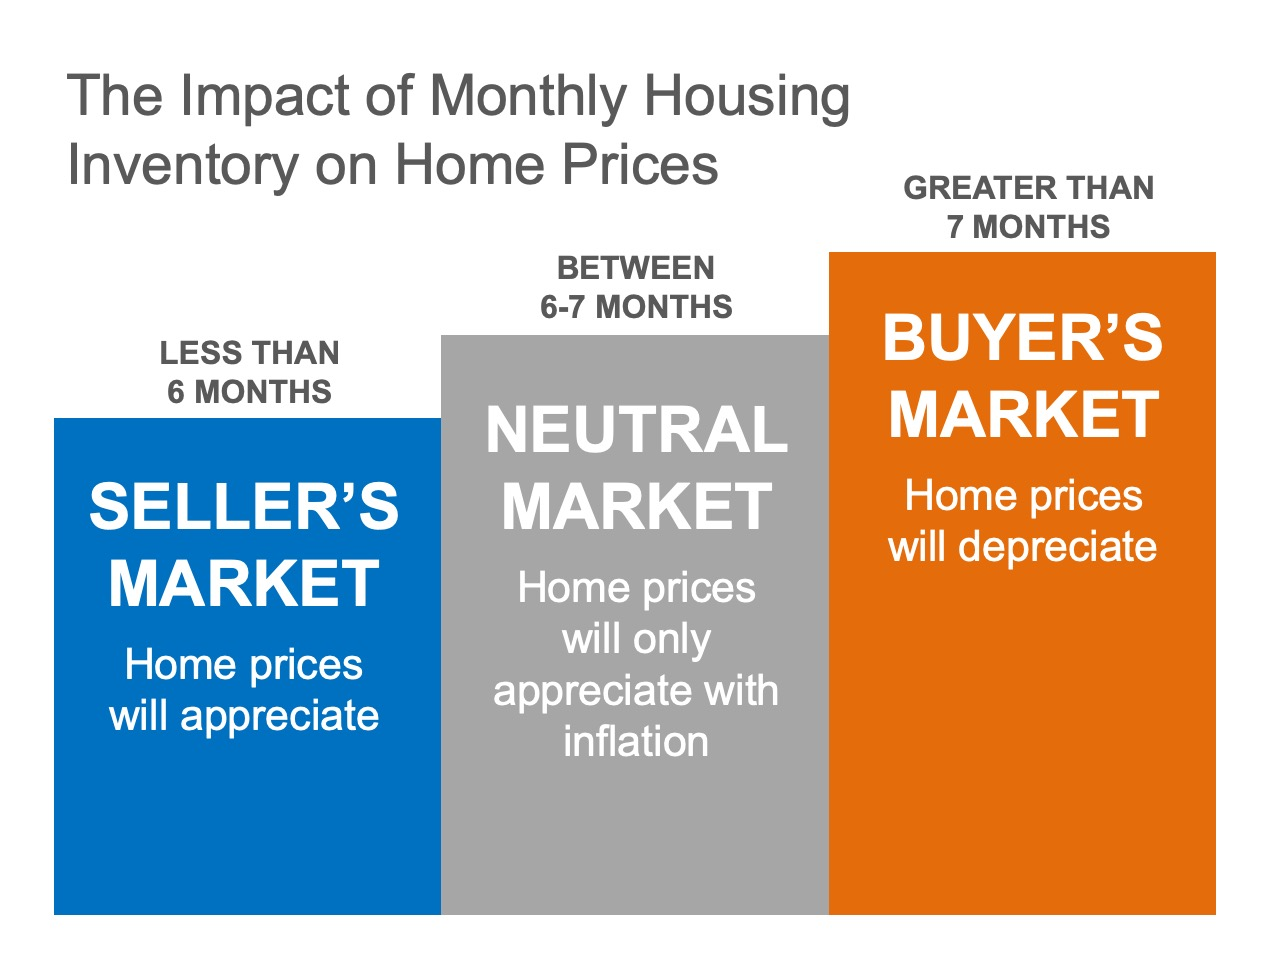 Existing-Home Sales Report Indicates Now Is a Great Time to Sell | Bridge Builders